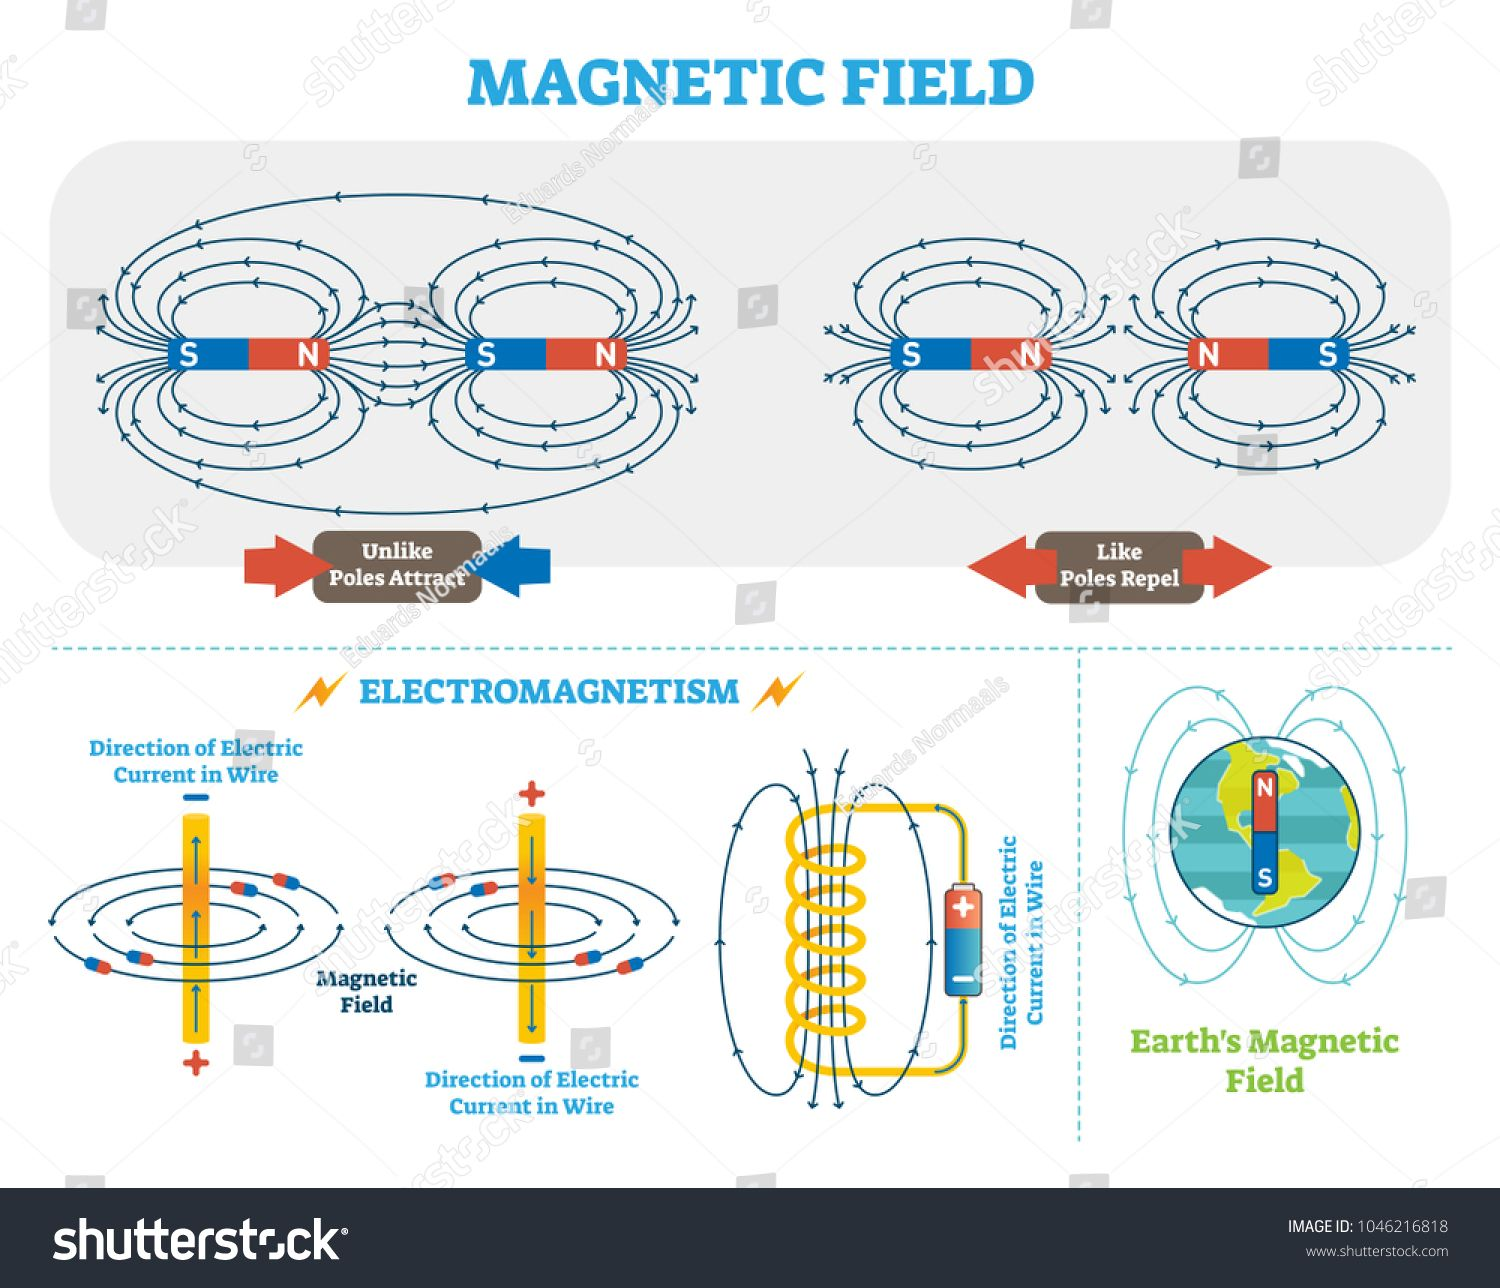 Scientific Magnetic Field And Electromagnetism Vector Illustration Scheme Electric Current And Magnetic Poles Sche Magnetic Field Electromagnet Physics Poster